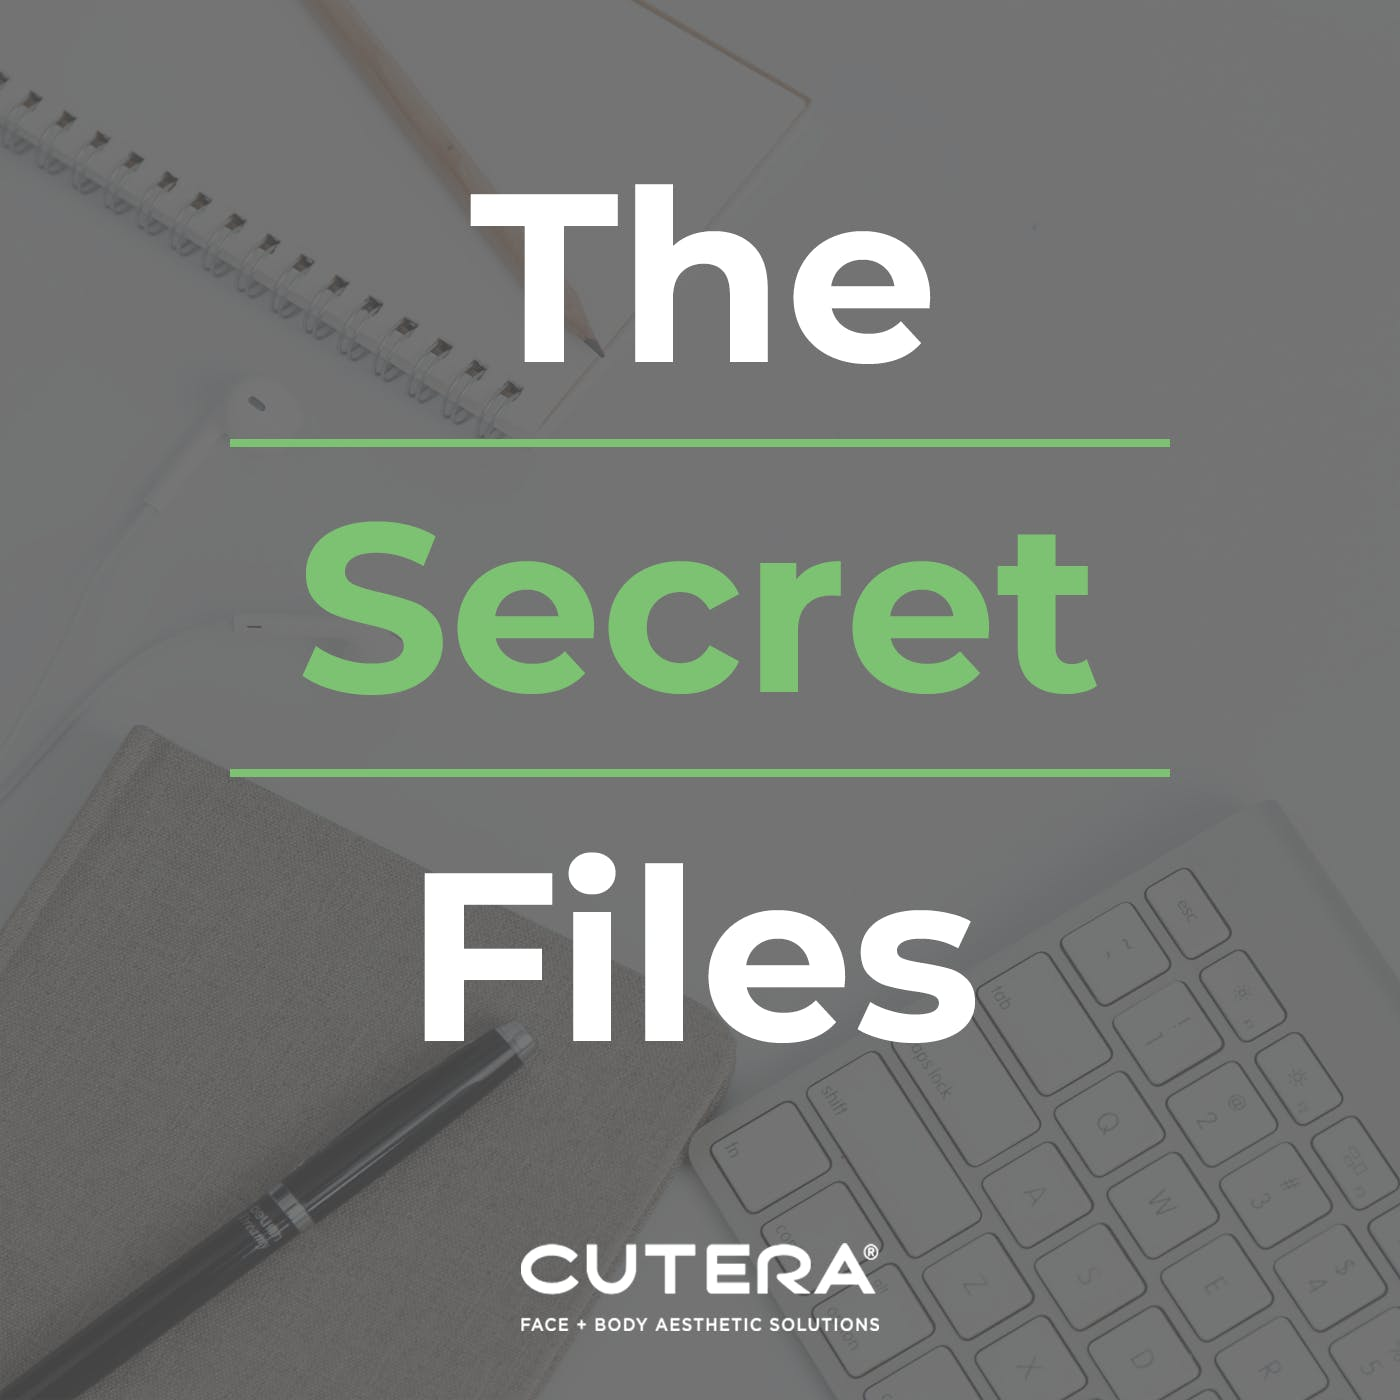 The Secret Files Image